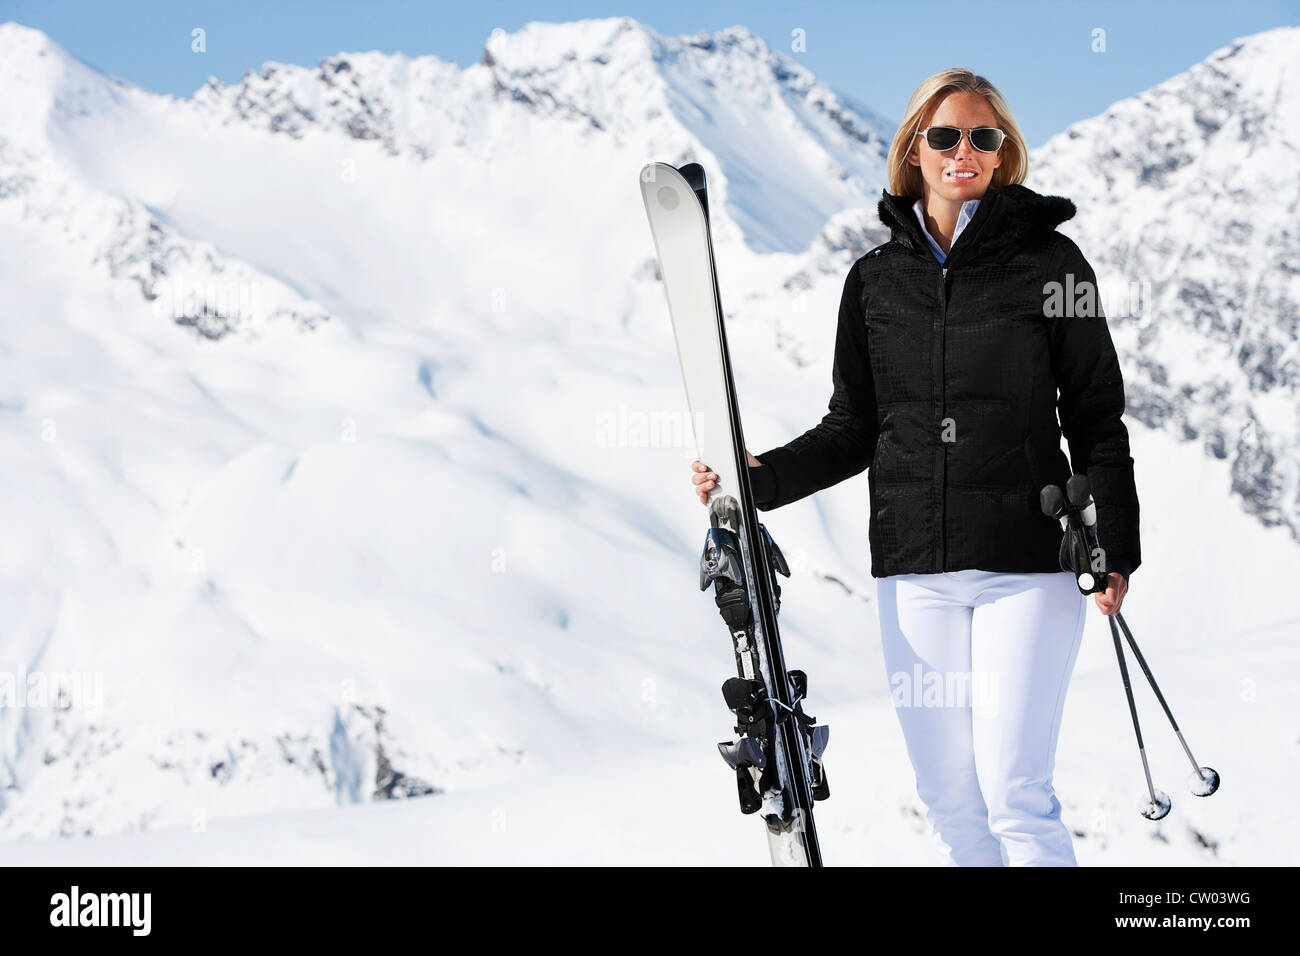 Skier standing on snowy mountain - Stock Image